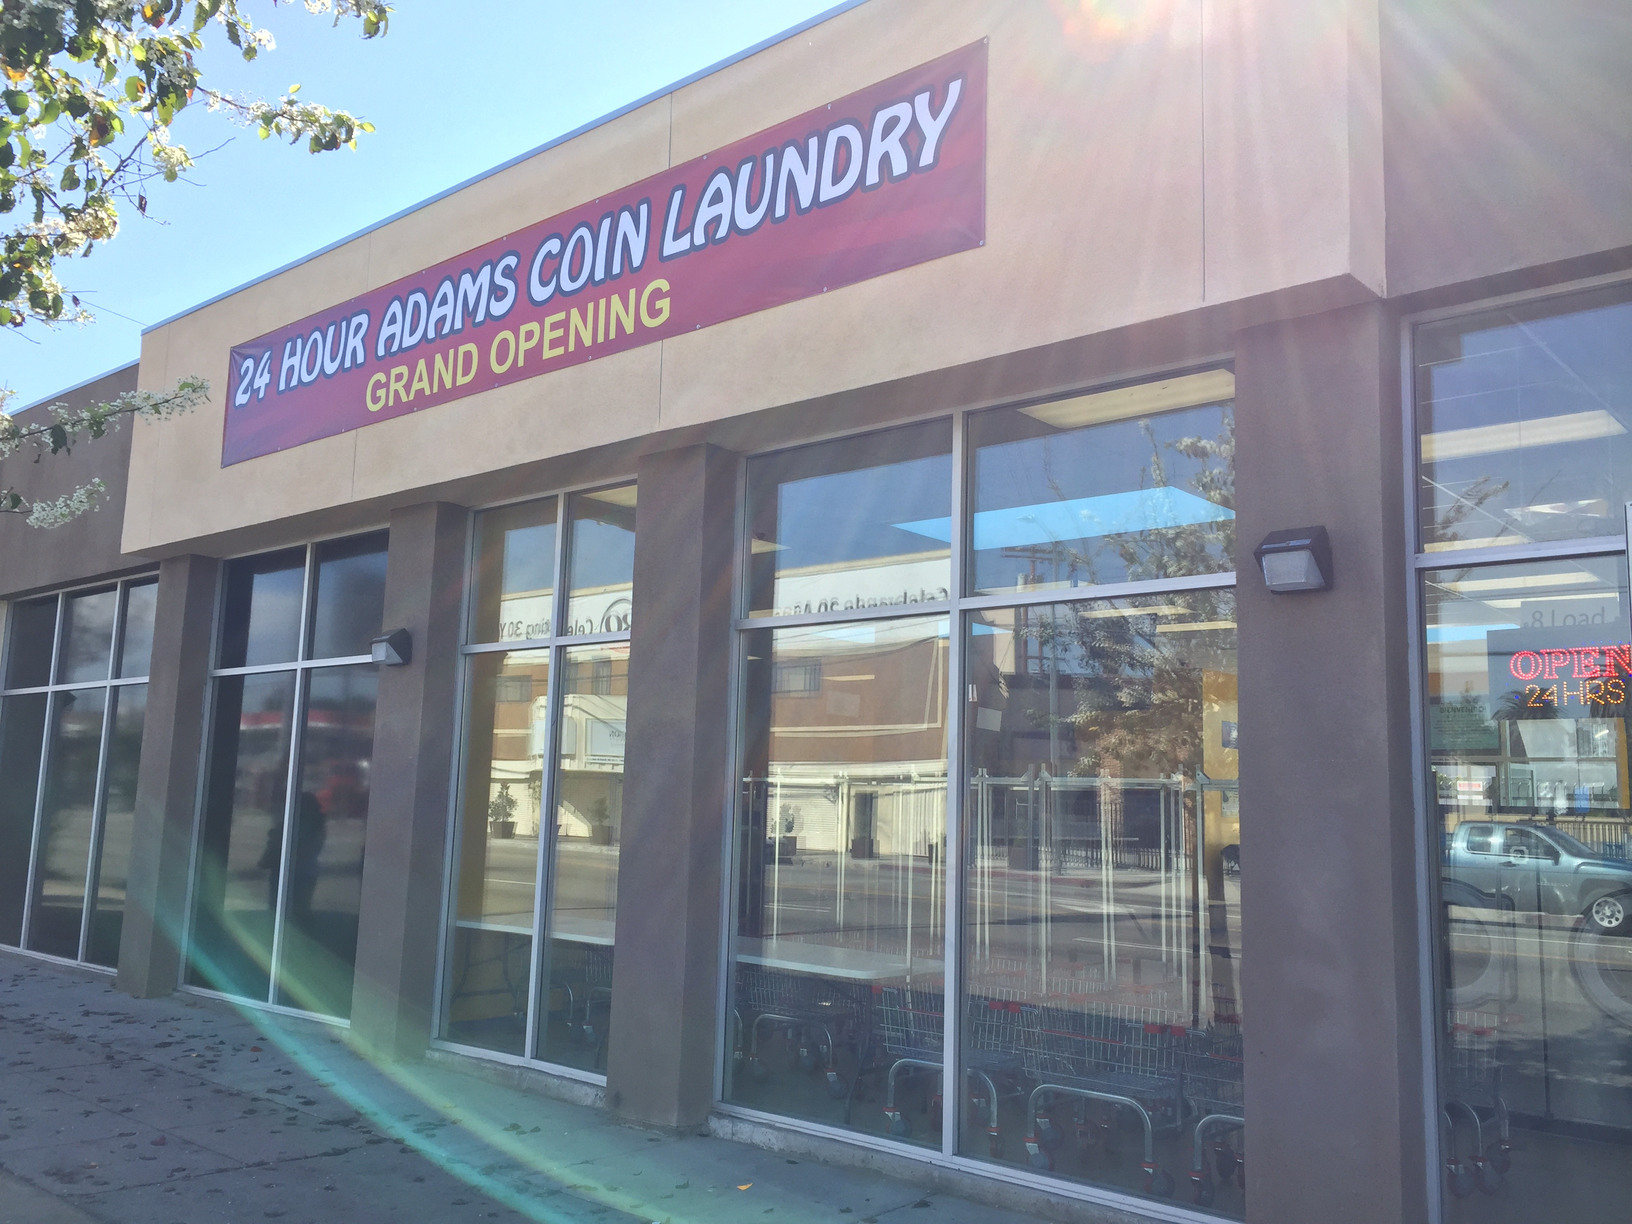 24 Hour Adams Coin Laundry